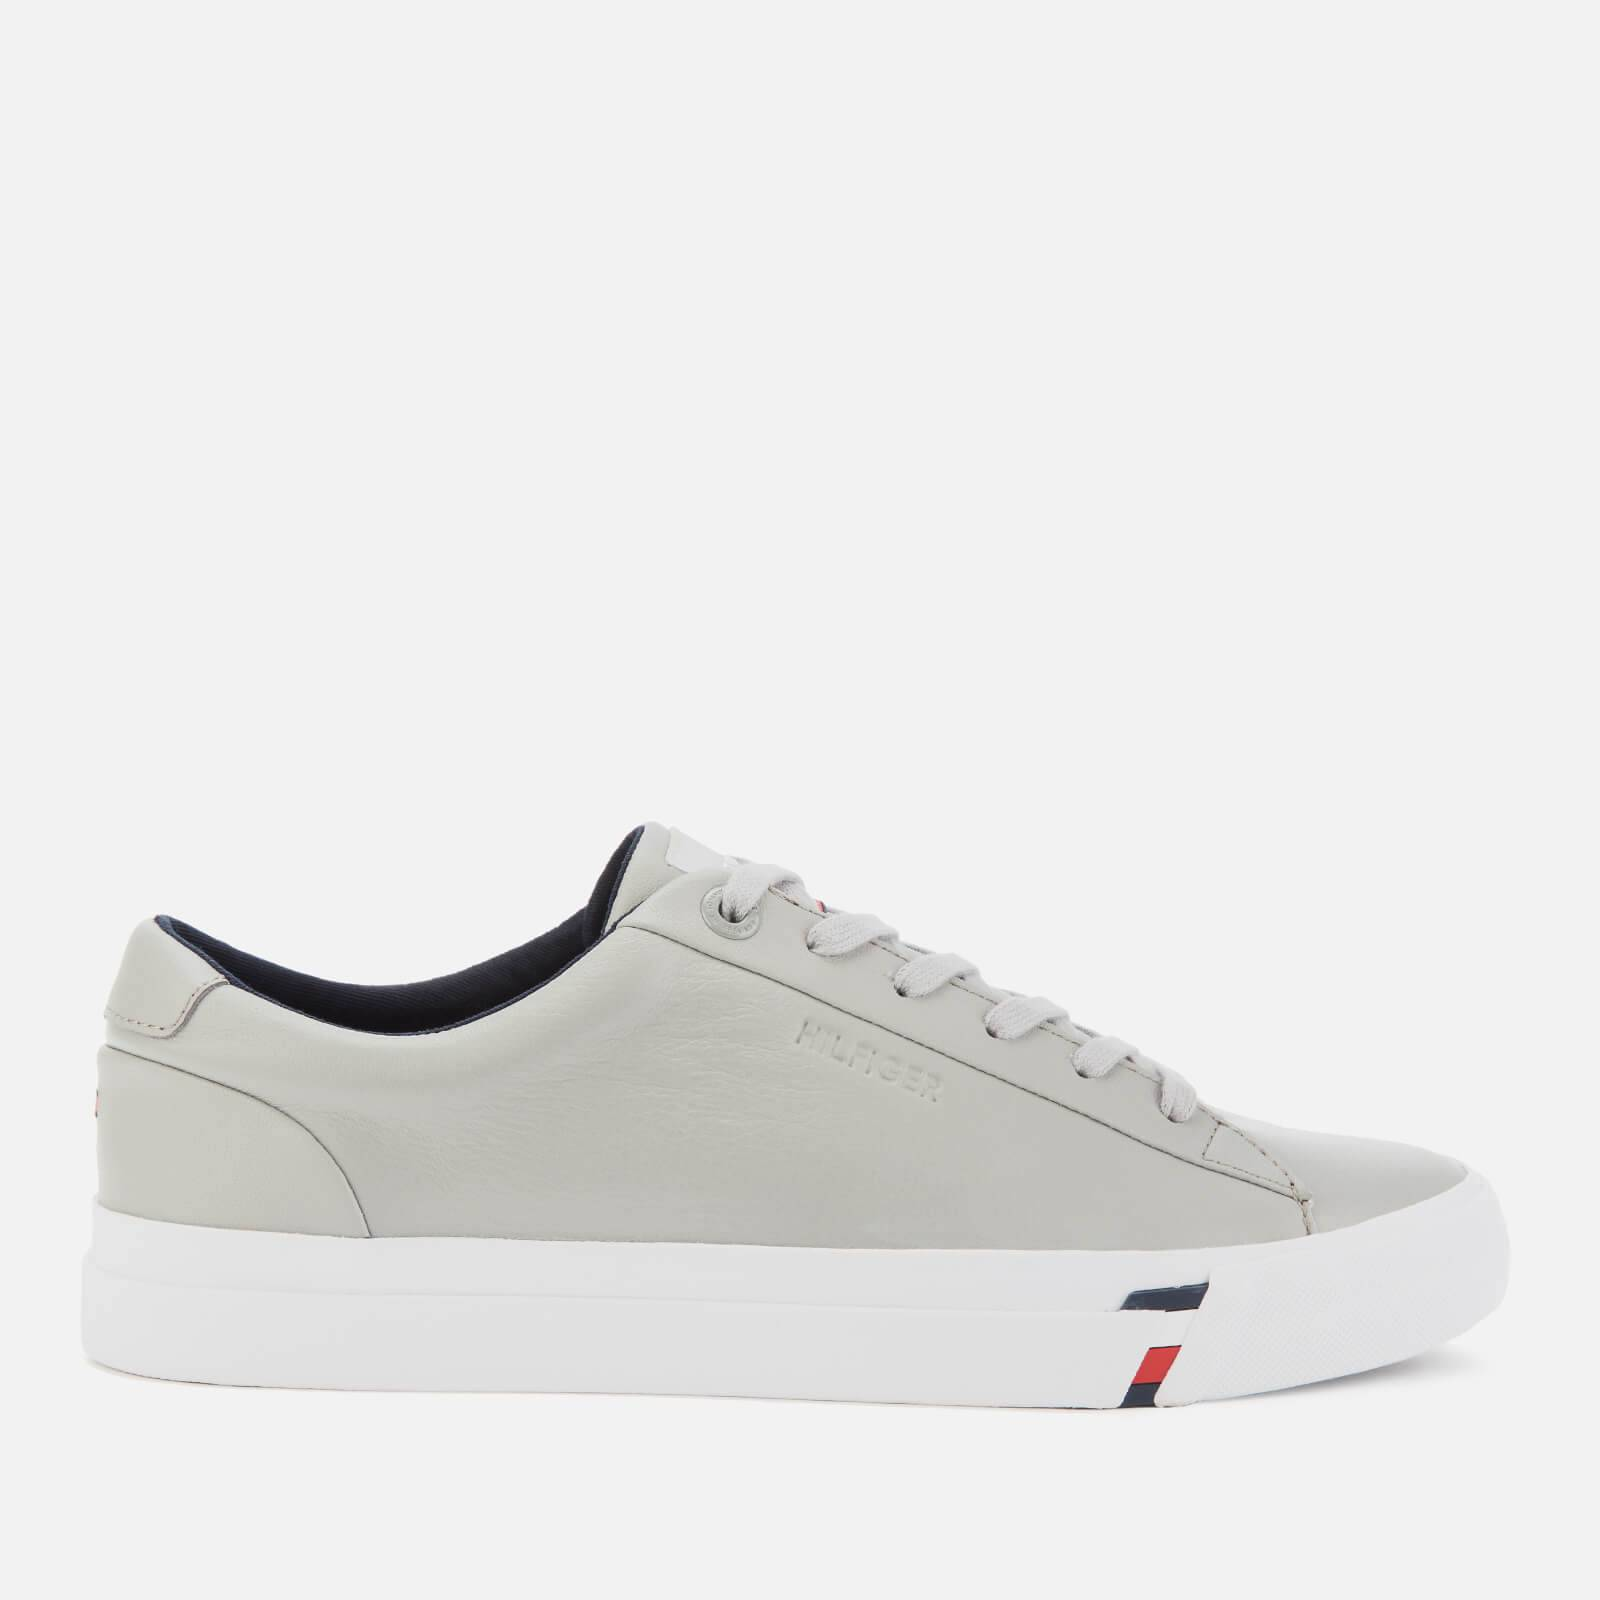 Tommy Hilfiger Men's Corporate Leather Trainers - Antique Silver - EU 45/UK 10.5